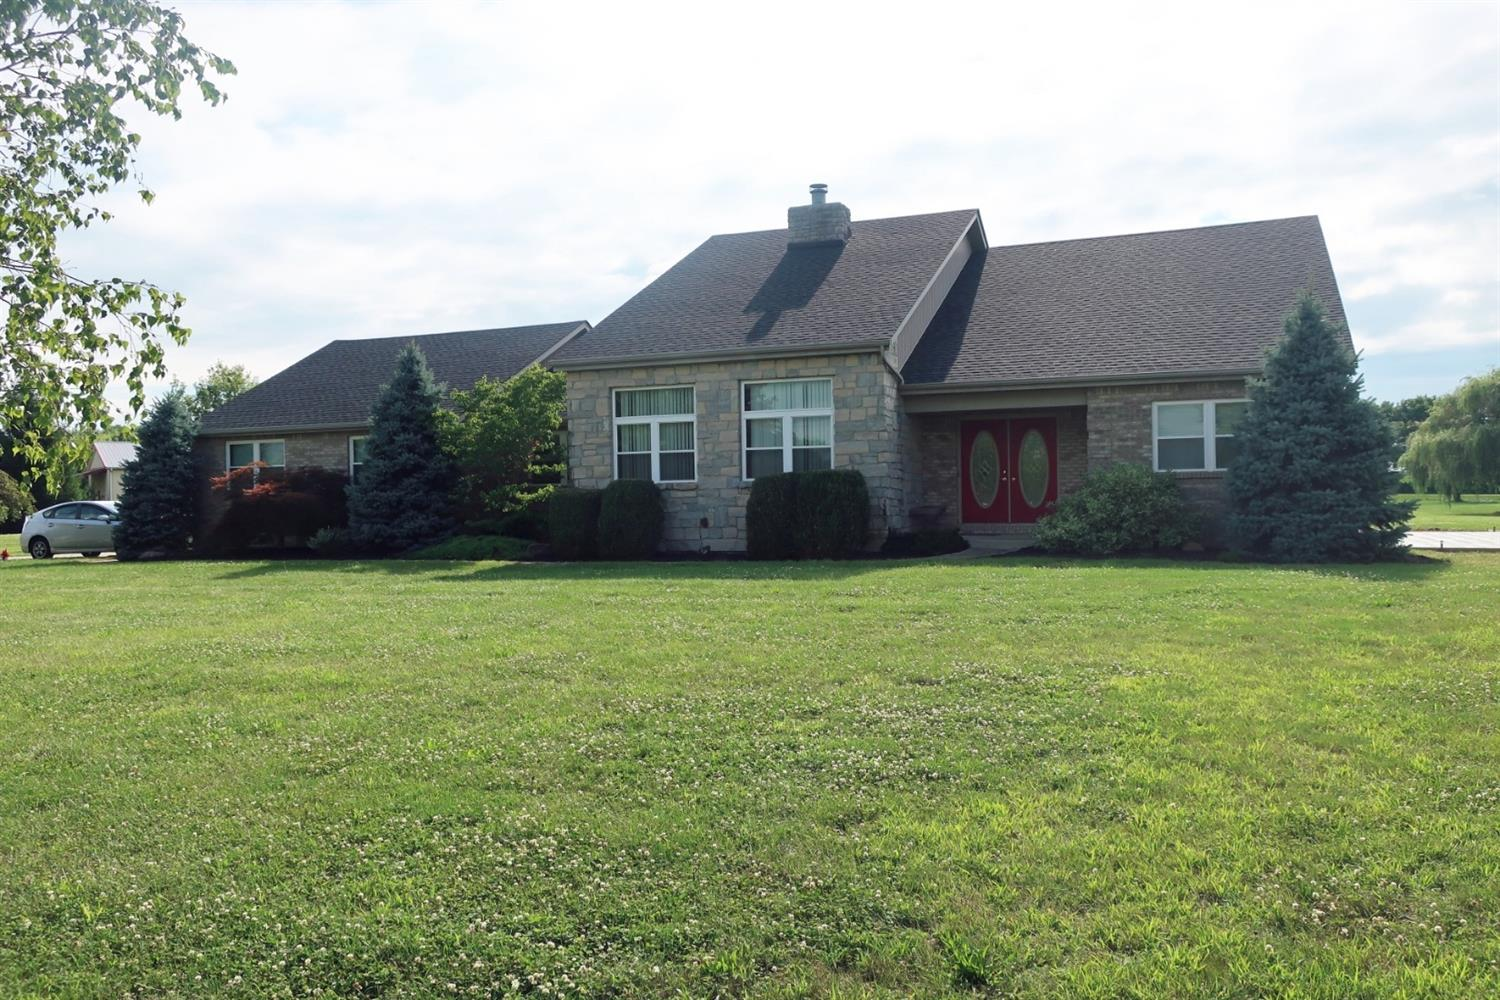 Property for sale at 2821 N Liberty Keuter Road, Turtle Creek Twp,  OH 45036